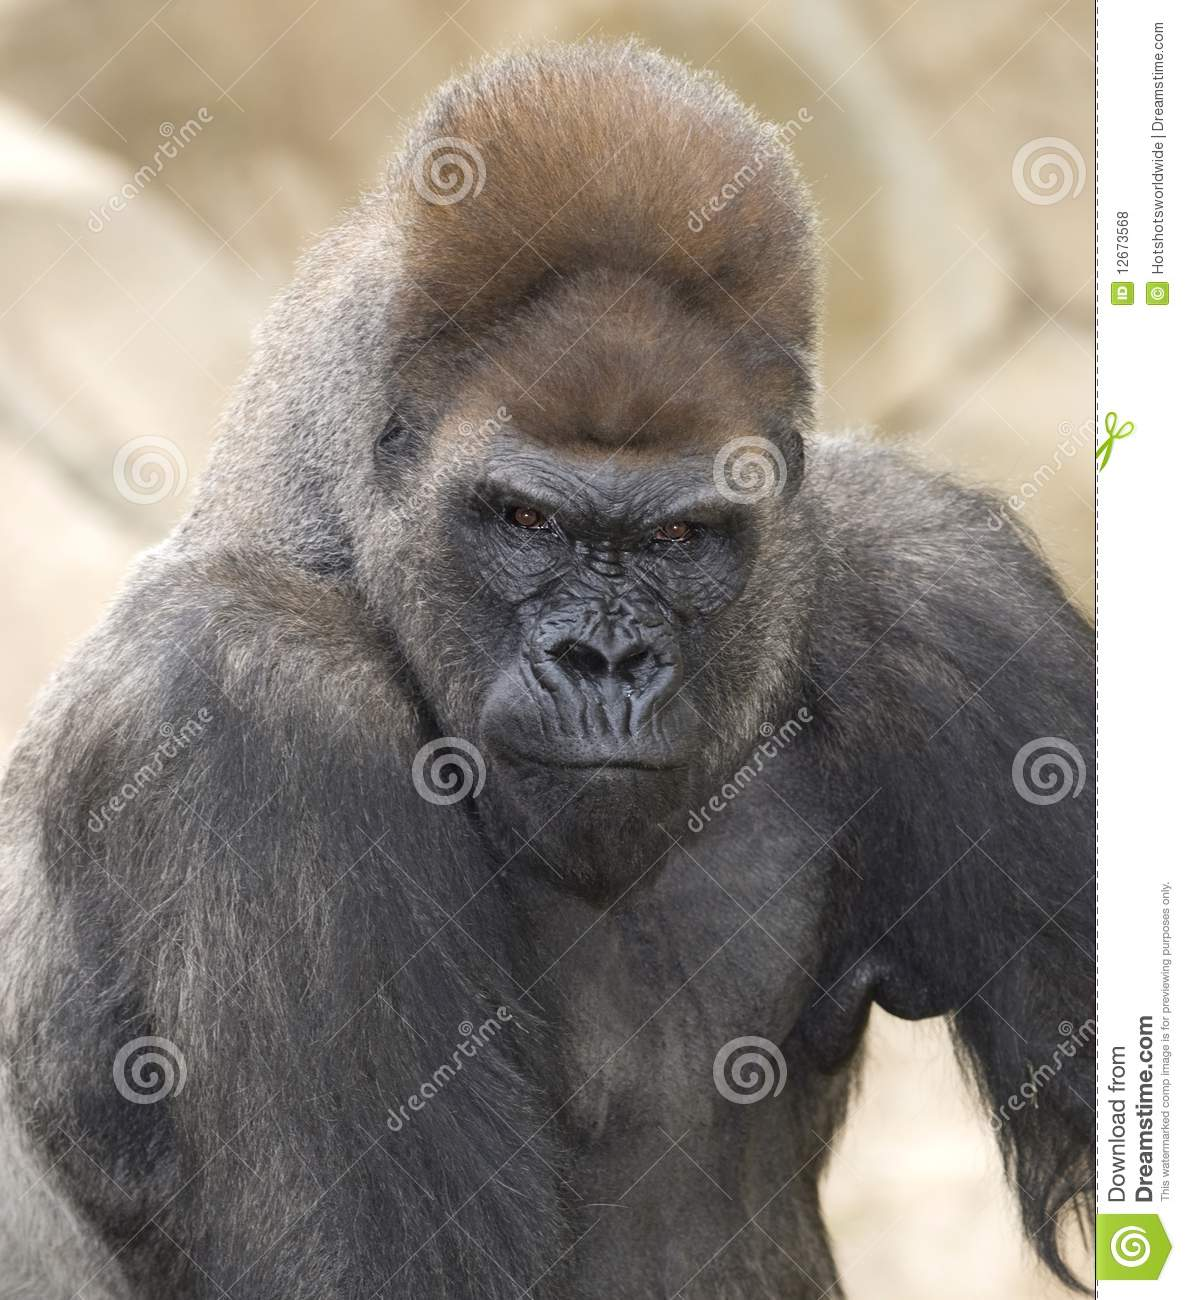 African silverback gorilla - photo#9